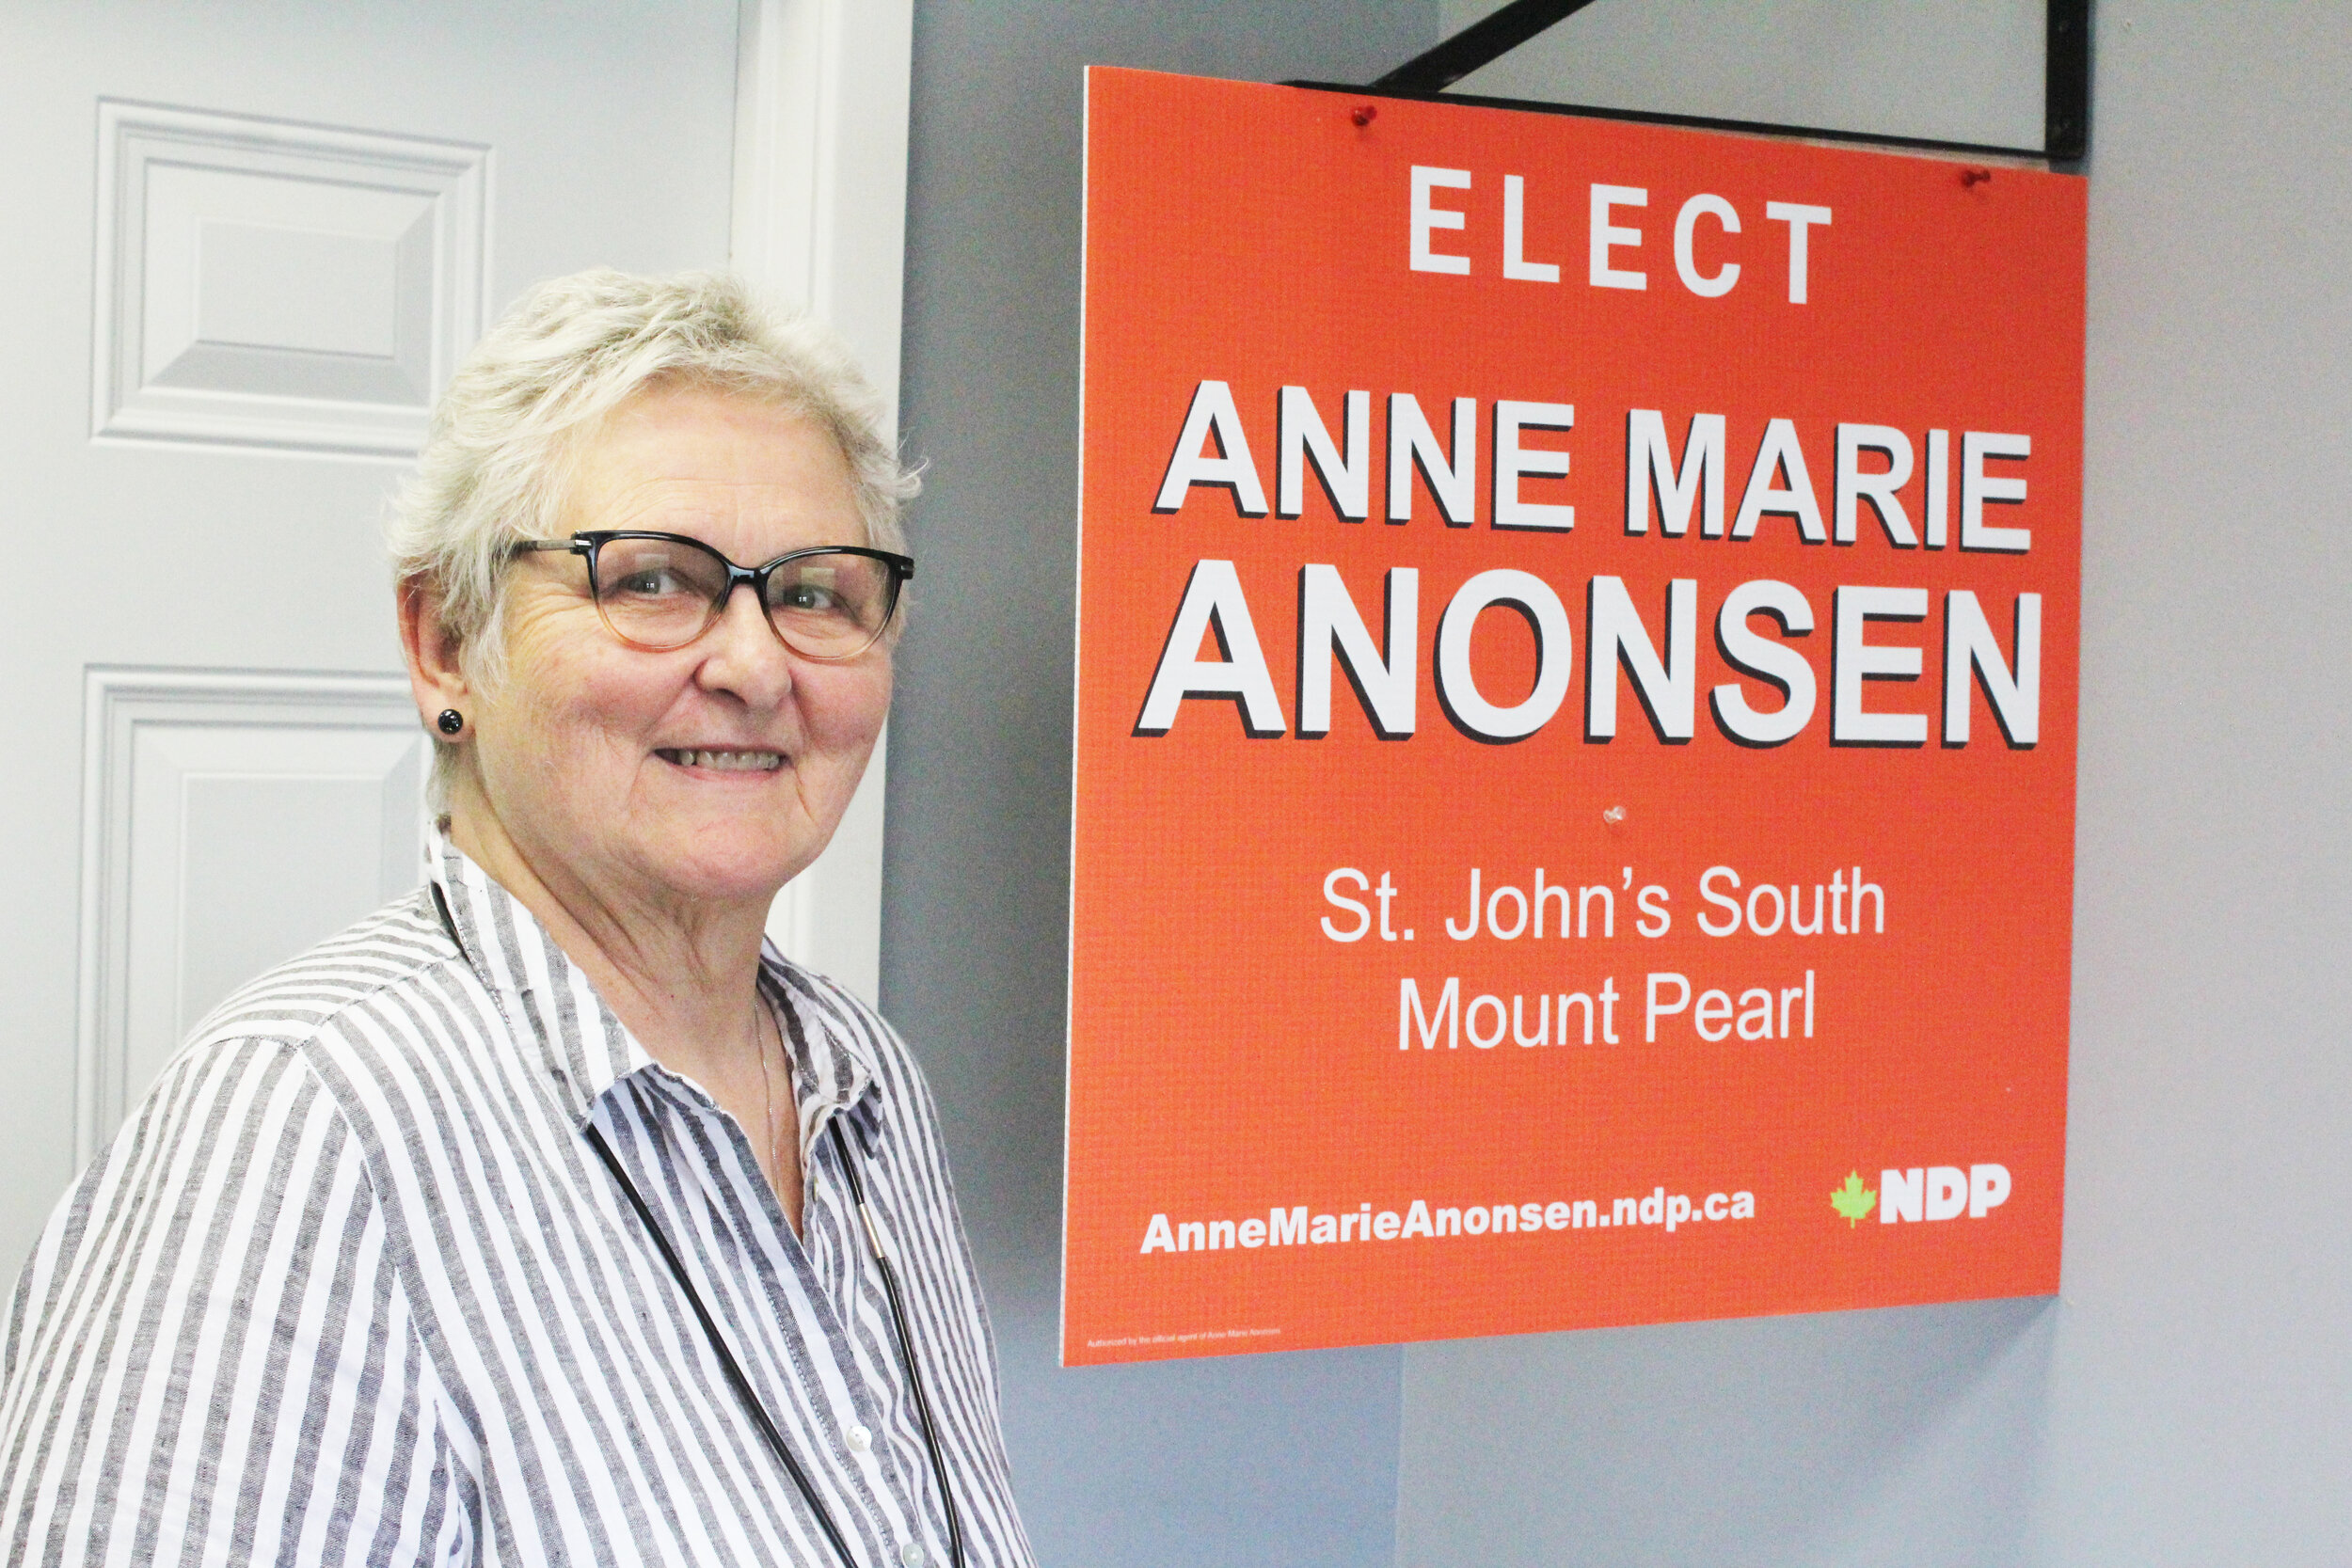 NDP St. John's South— Mount Pearl candidate Anne Marie Anonsen. Mark Squibb photo